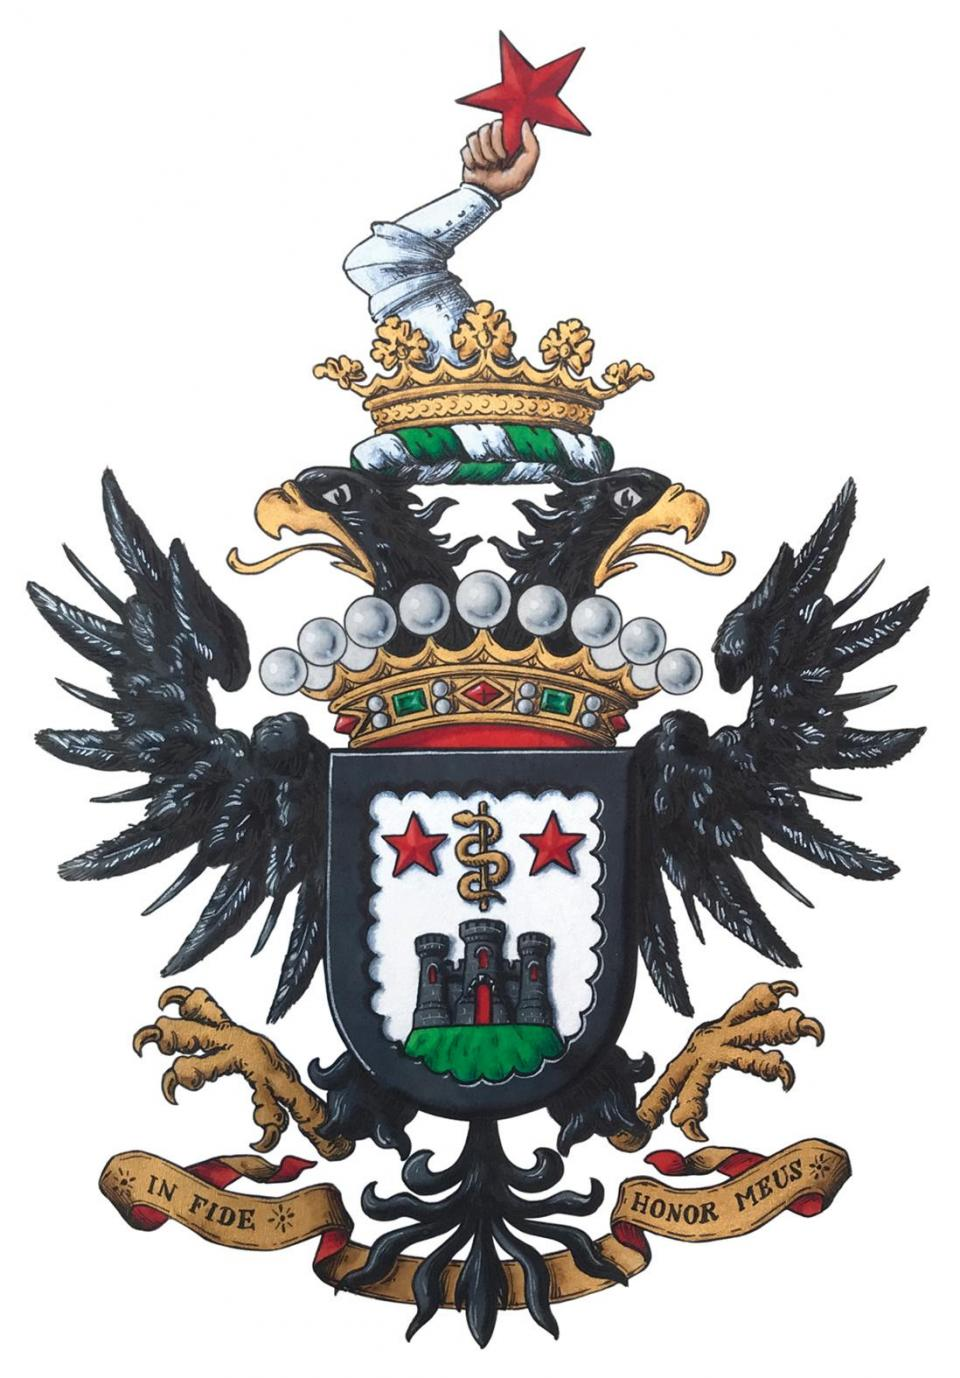 The coat of arms of Lieutenant Colonel Count Charles A. Gauci, the new chief herald